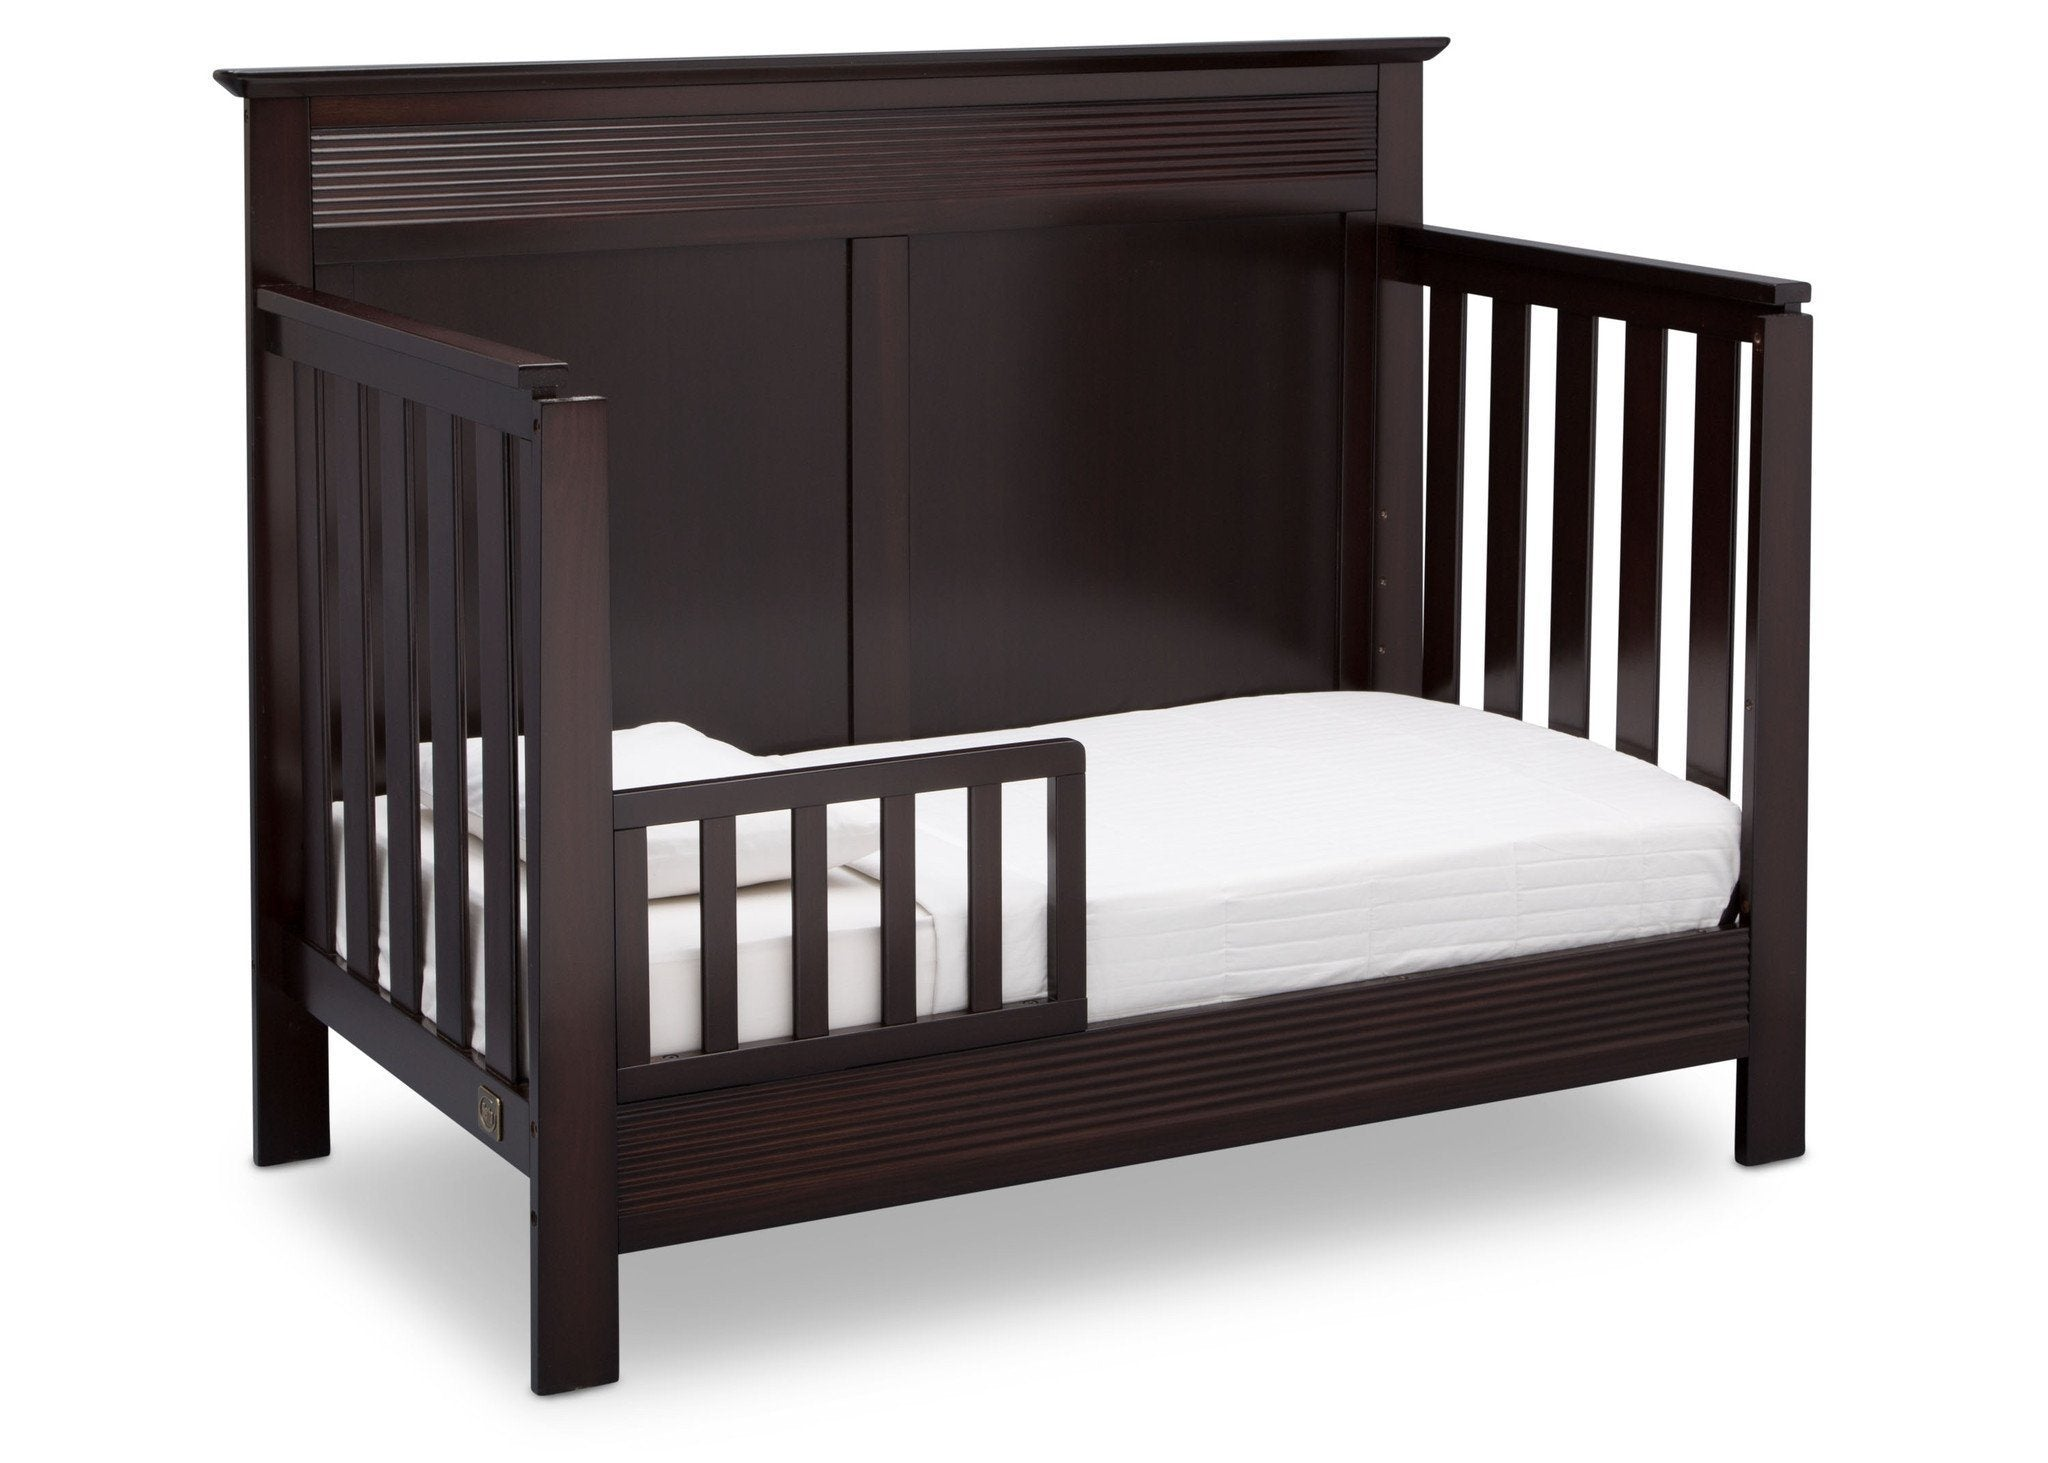 Serta Dark Chocolate (207) Fall River 4-in-1 Convertible Crib, Right Toddler Bed View c3c